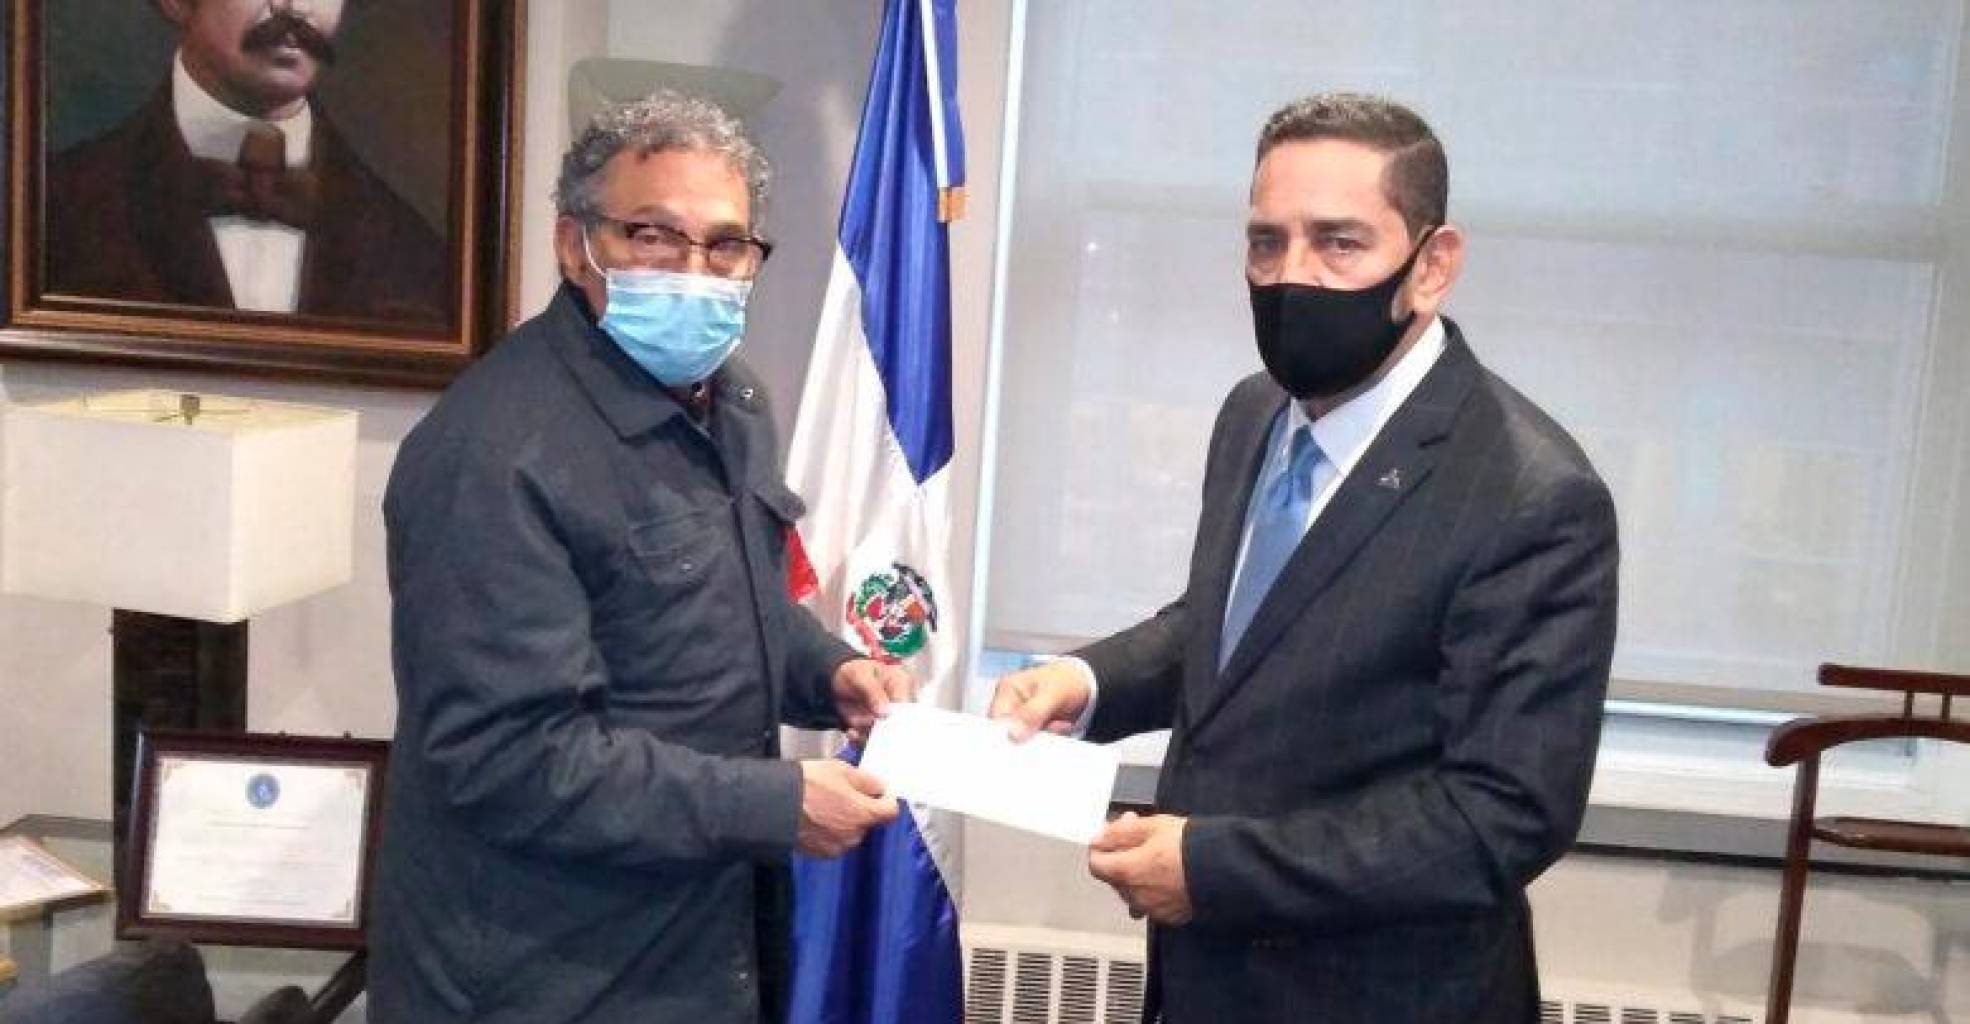 The Dominican Consulate in New York will cover the expenses of Hugo Cabrera's funeral